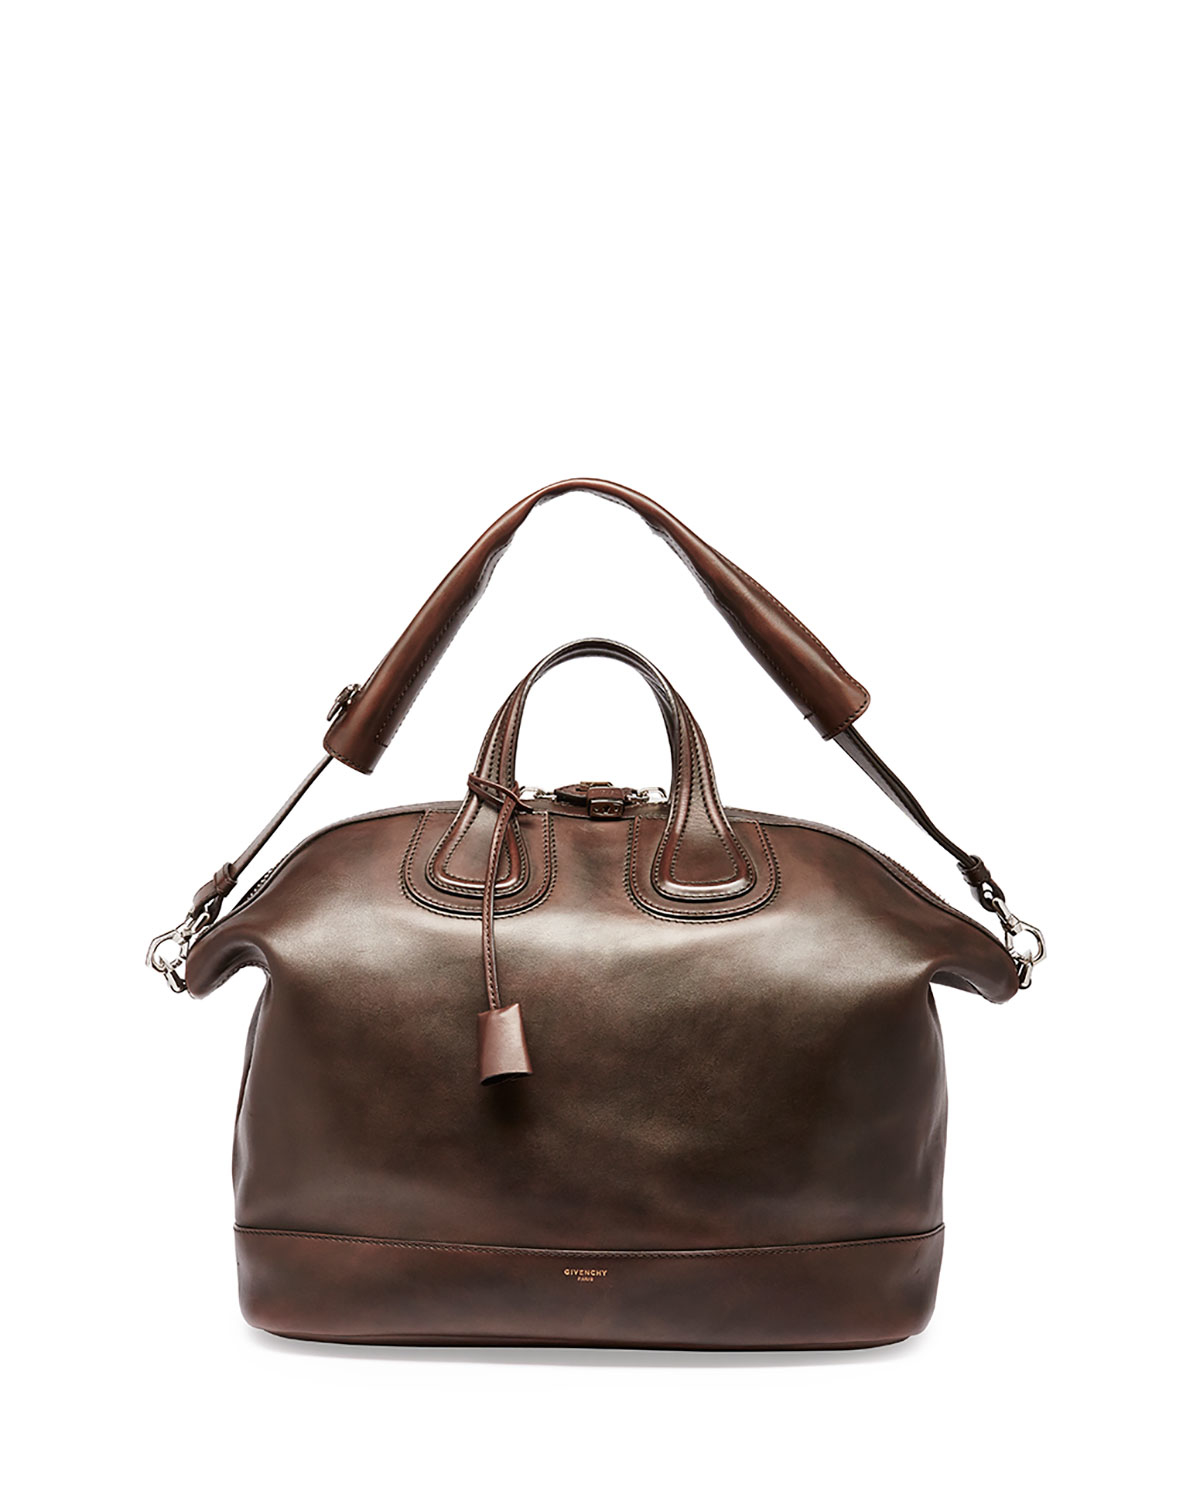 3b4b189d53a7 Lyst - Givenchy Nightingale Men s Leather Satchel Bag in Brown for Men